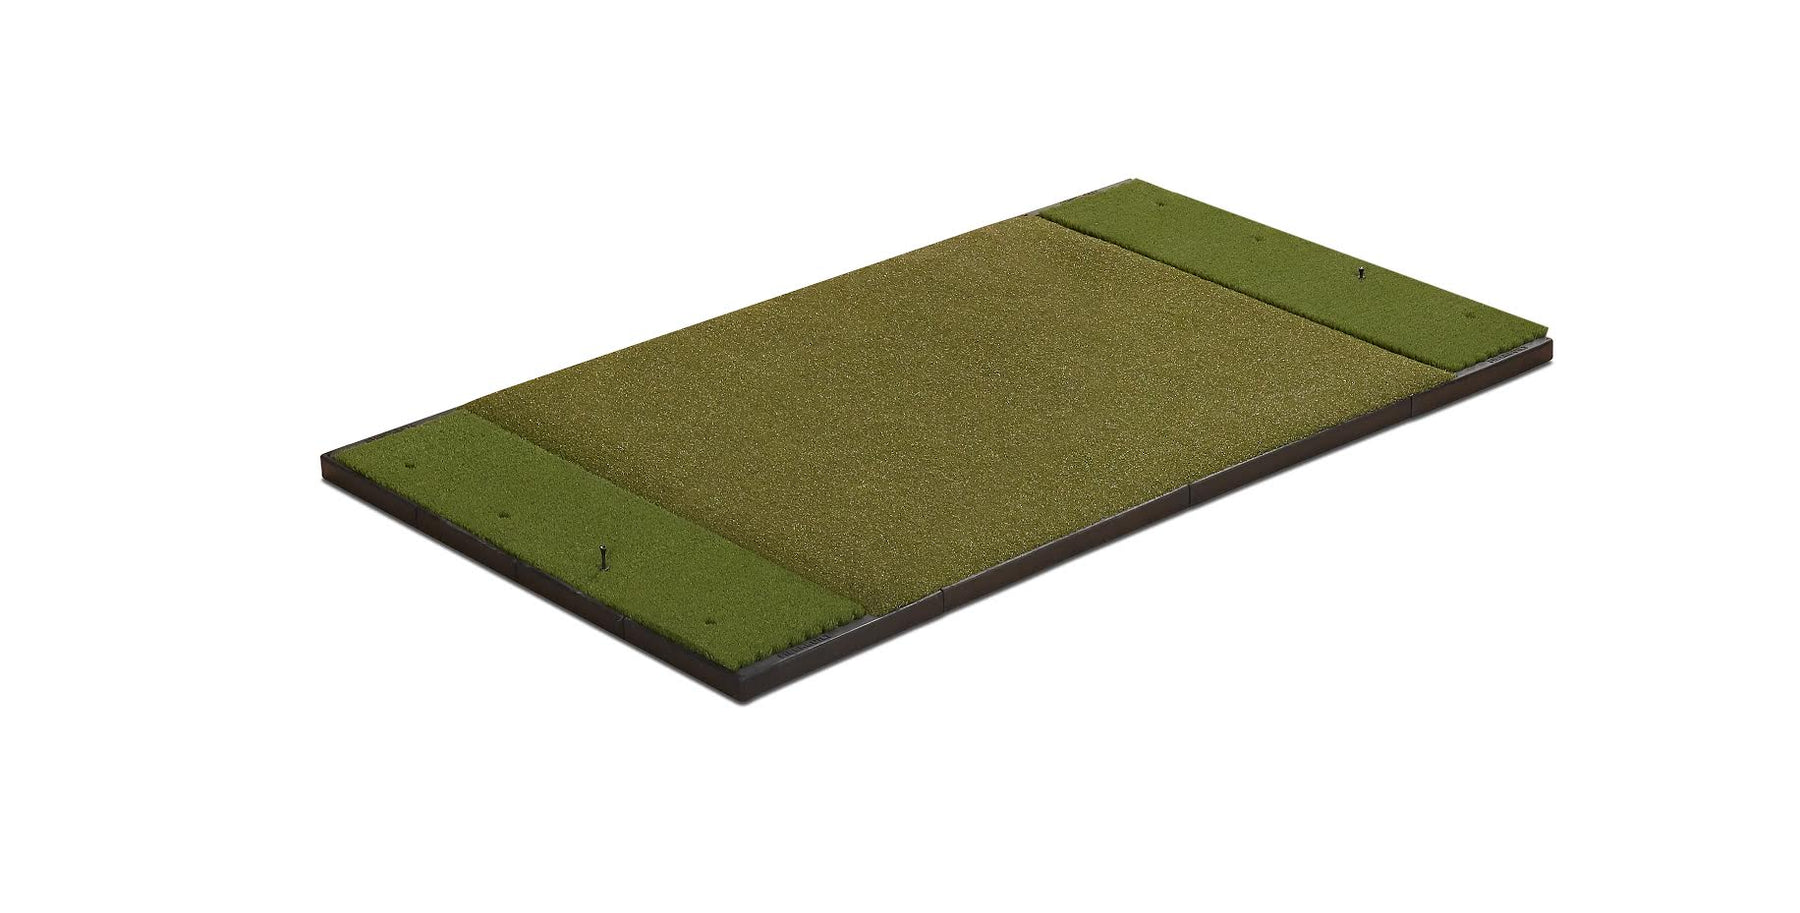 6' x 4' Double Hitting Mat Traditional Stance & Nylon Grass